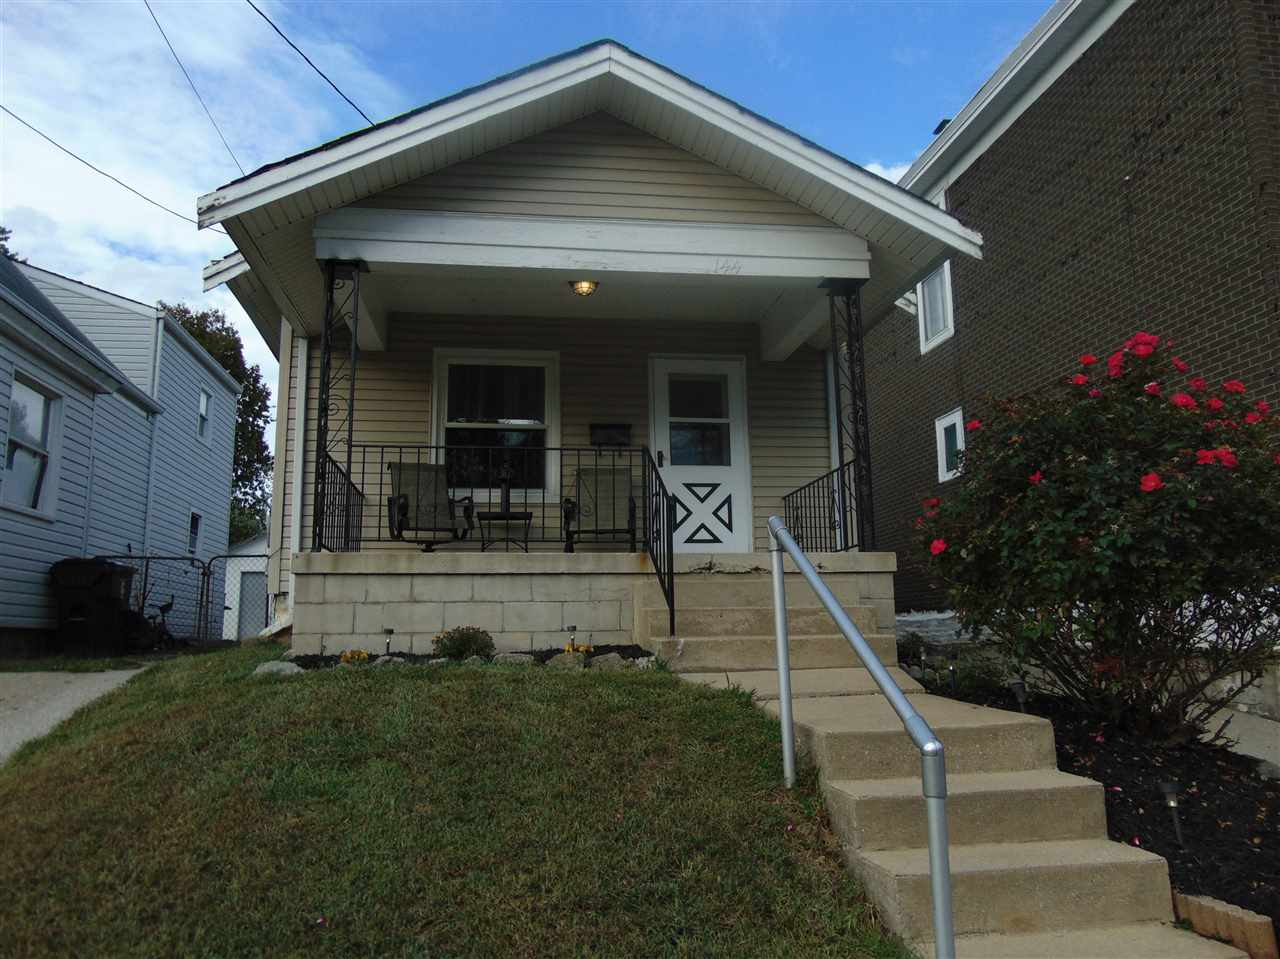 Photo 1 for 144 E 43 St Latonia, KY 41015